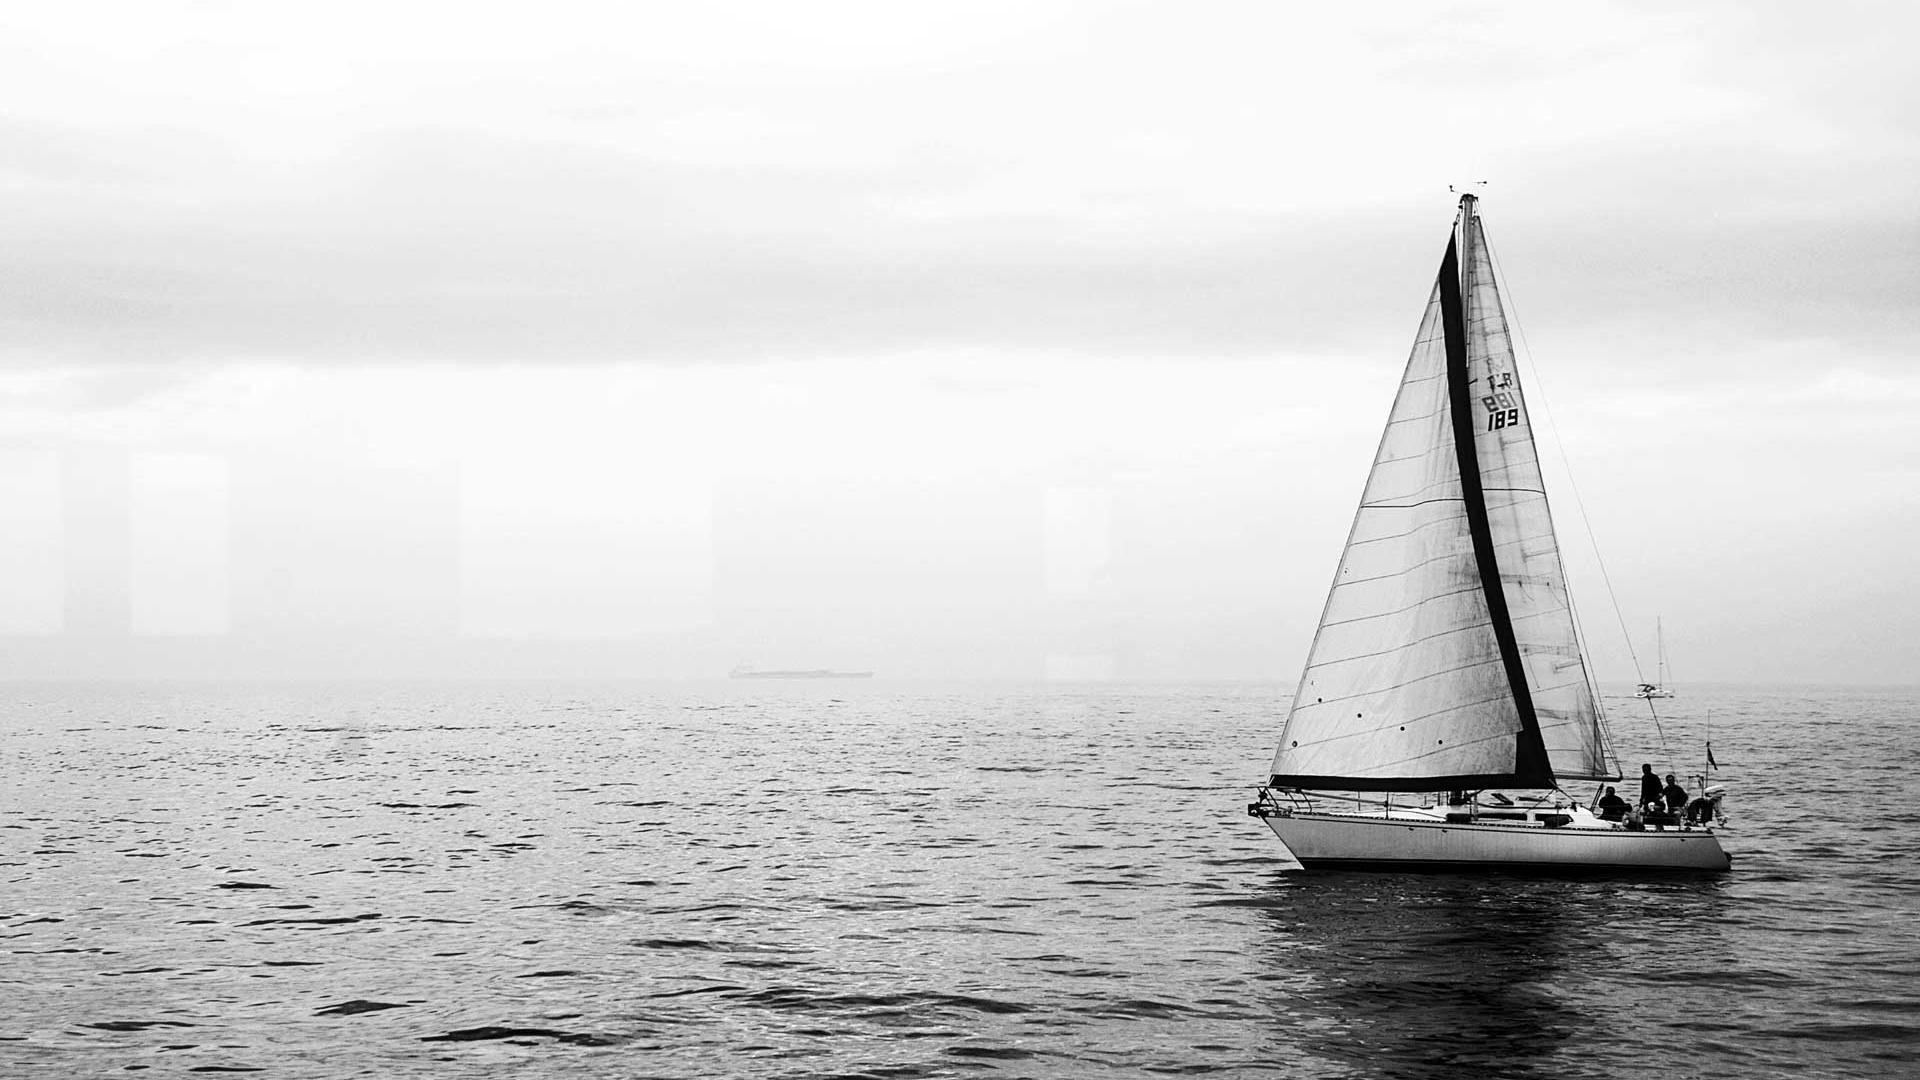 1920x1080  Grey sky and sea sailing desktop backgrounds wide wallpapers :1280x800,1440x900,1680x1050